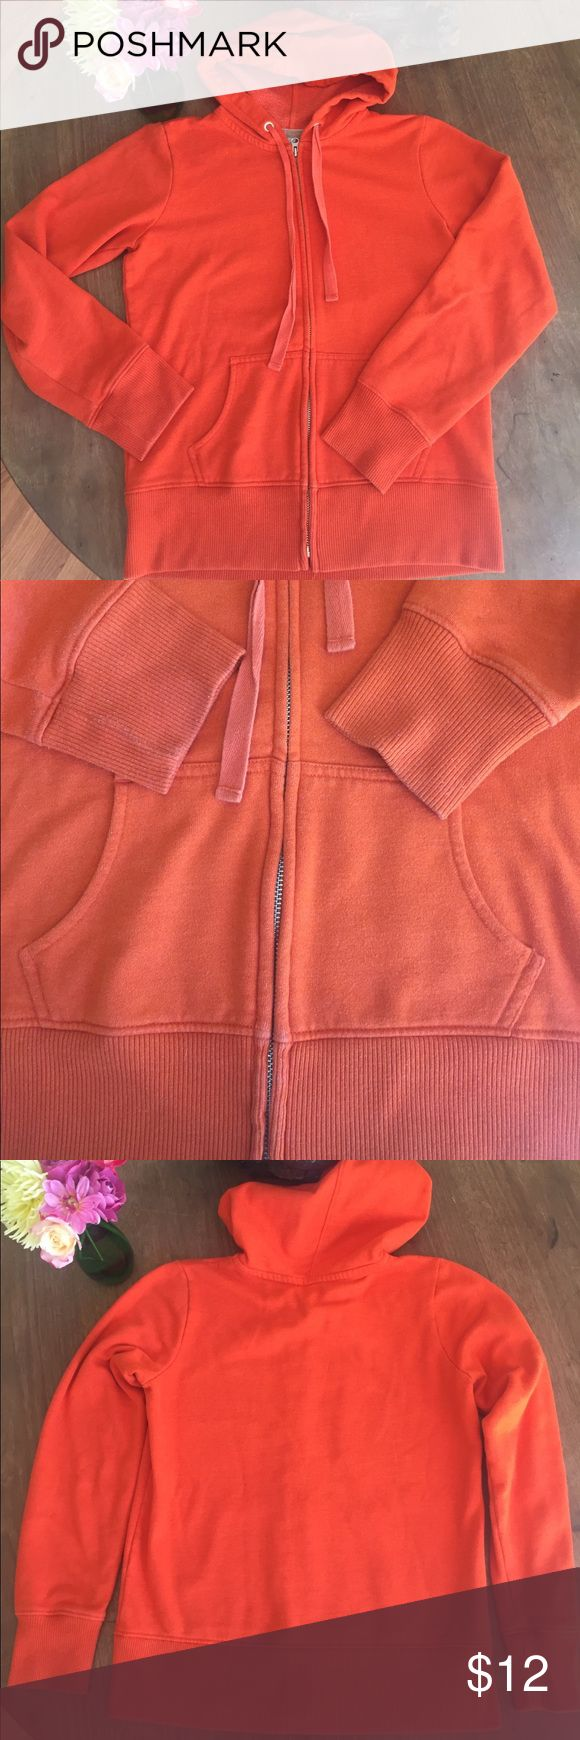 Old Navy zip up hoodie Orange Sz Med Great basic for end of summer and fall. Very slight pilling on the cuffs and then very minimal throughout. Slight fading on edges as you see. Still very soft and bright. Old Navy Tops Sweatshirts & Hoodies